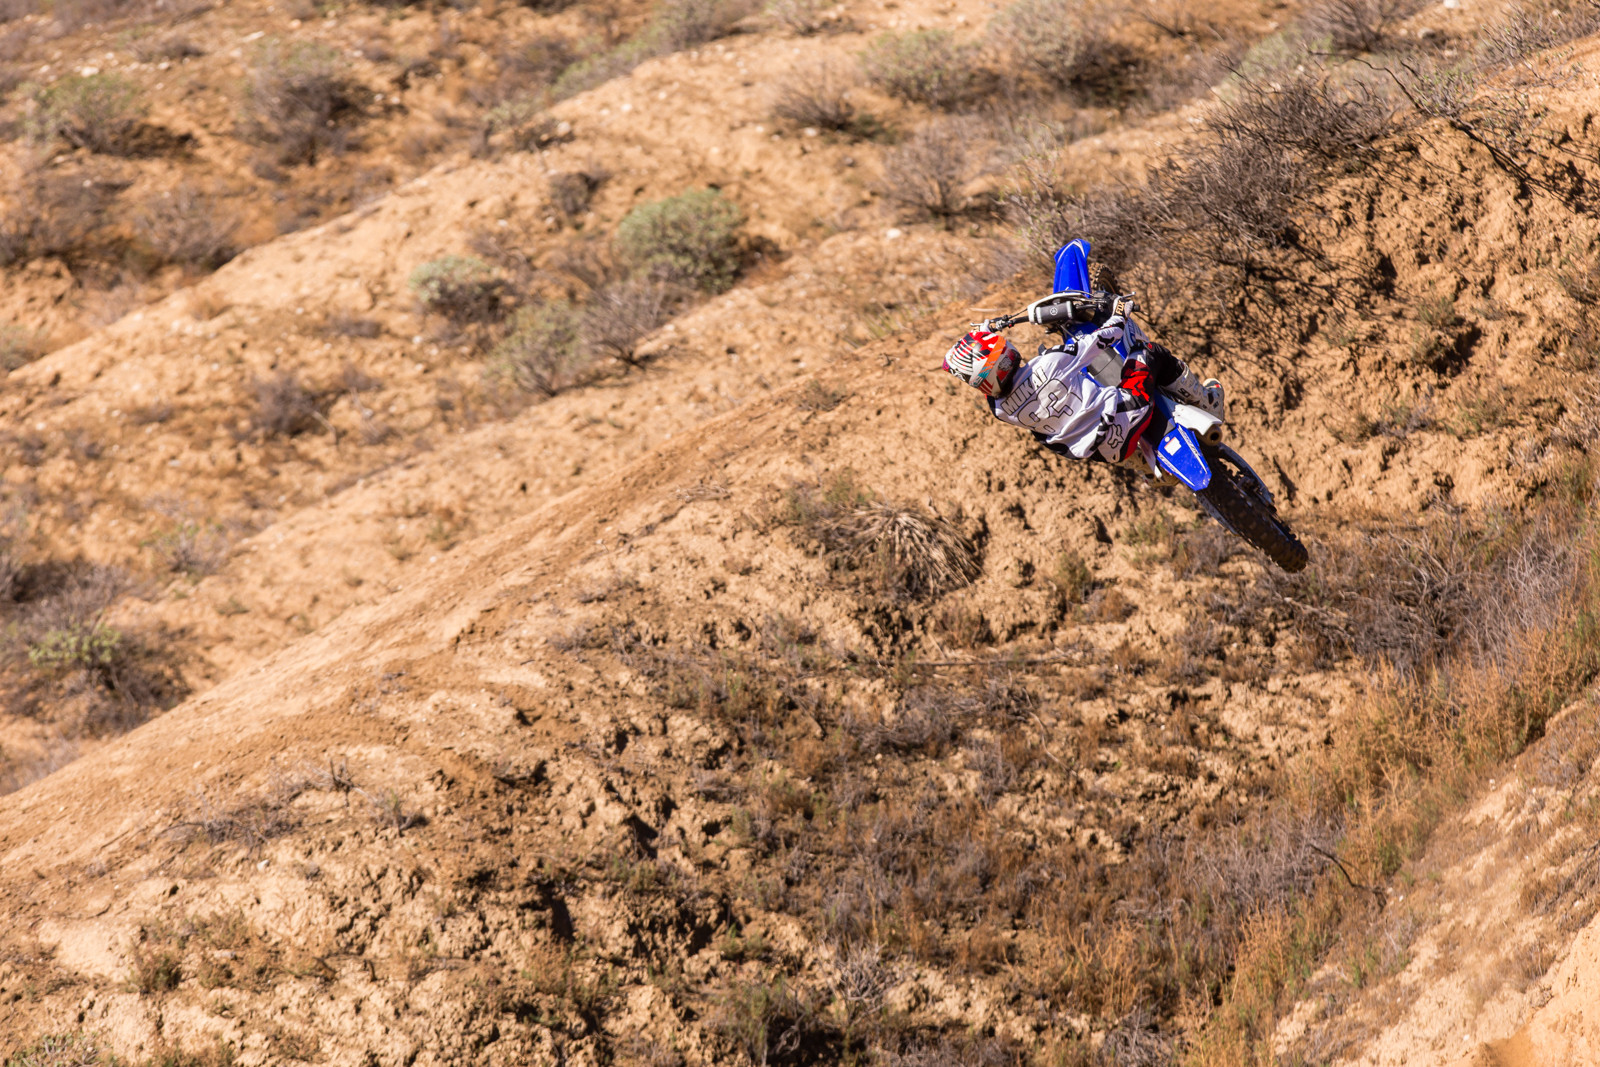 Kai Mukai - Rain in SoCal - To the Hills of Beaumont - Motocross Pictures - Vital MX